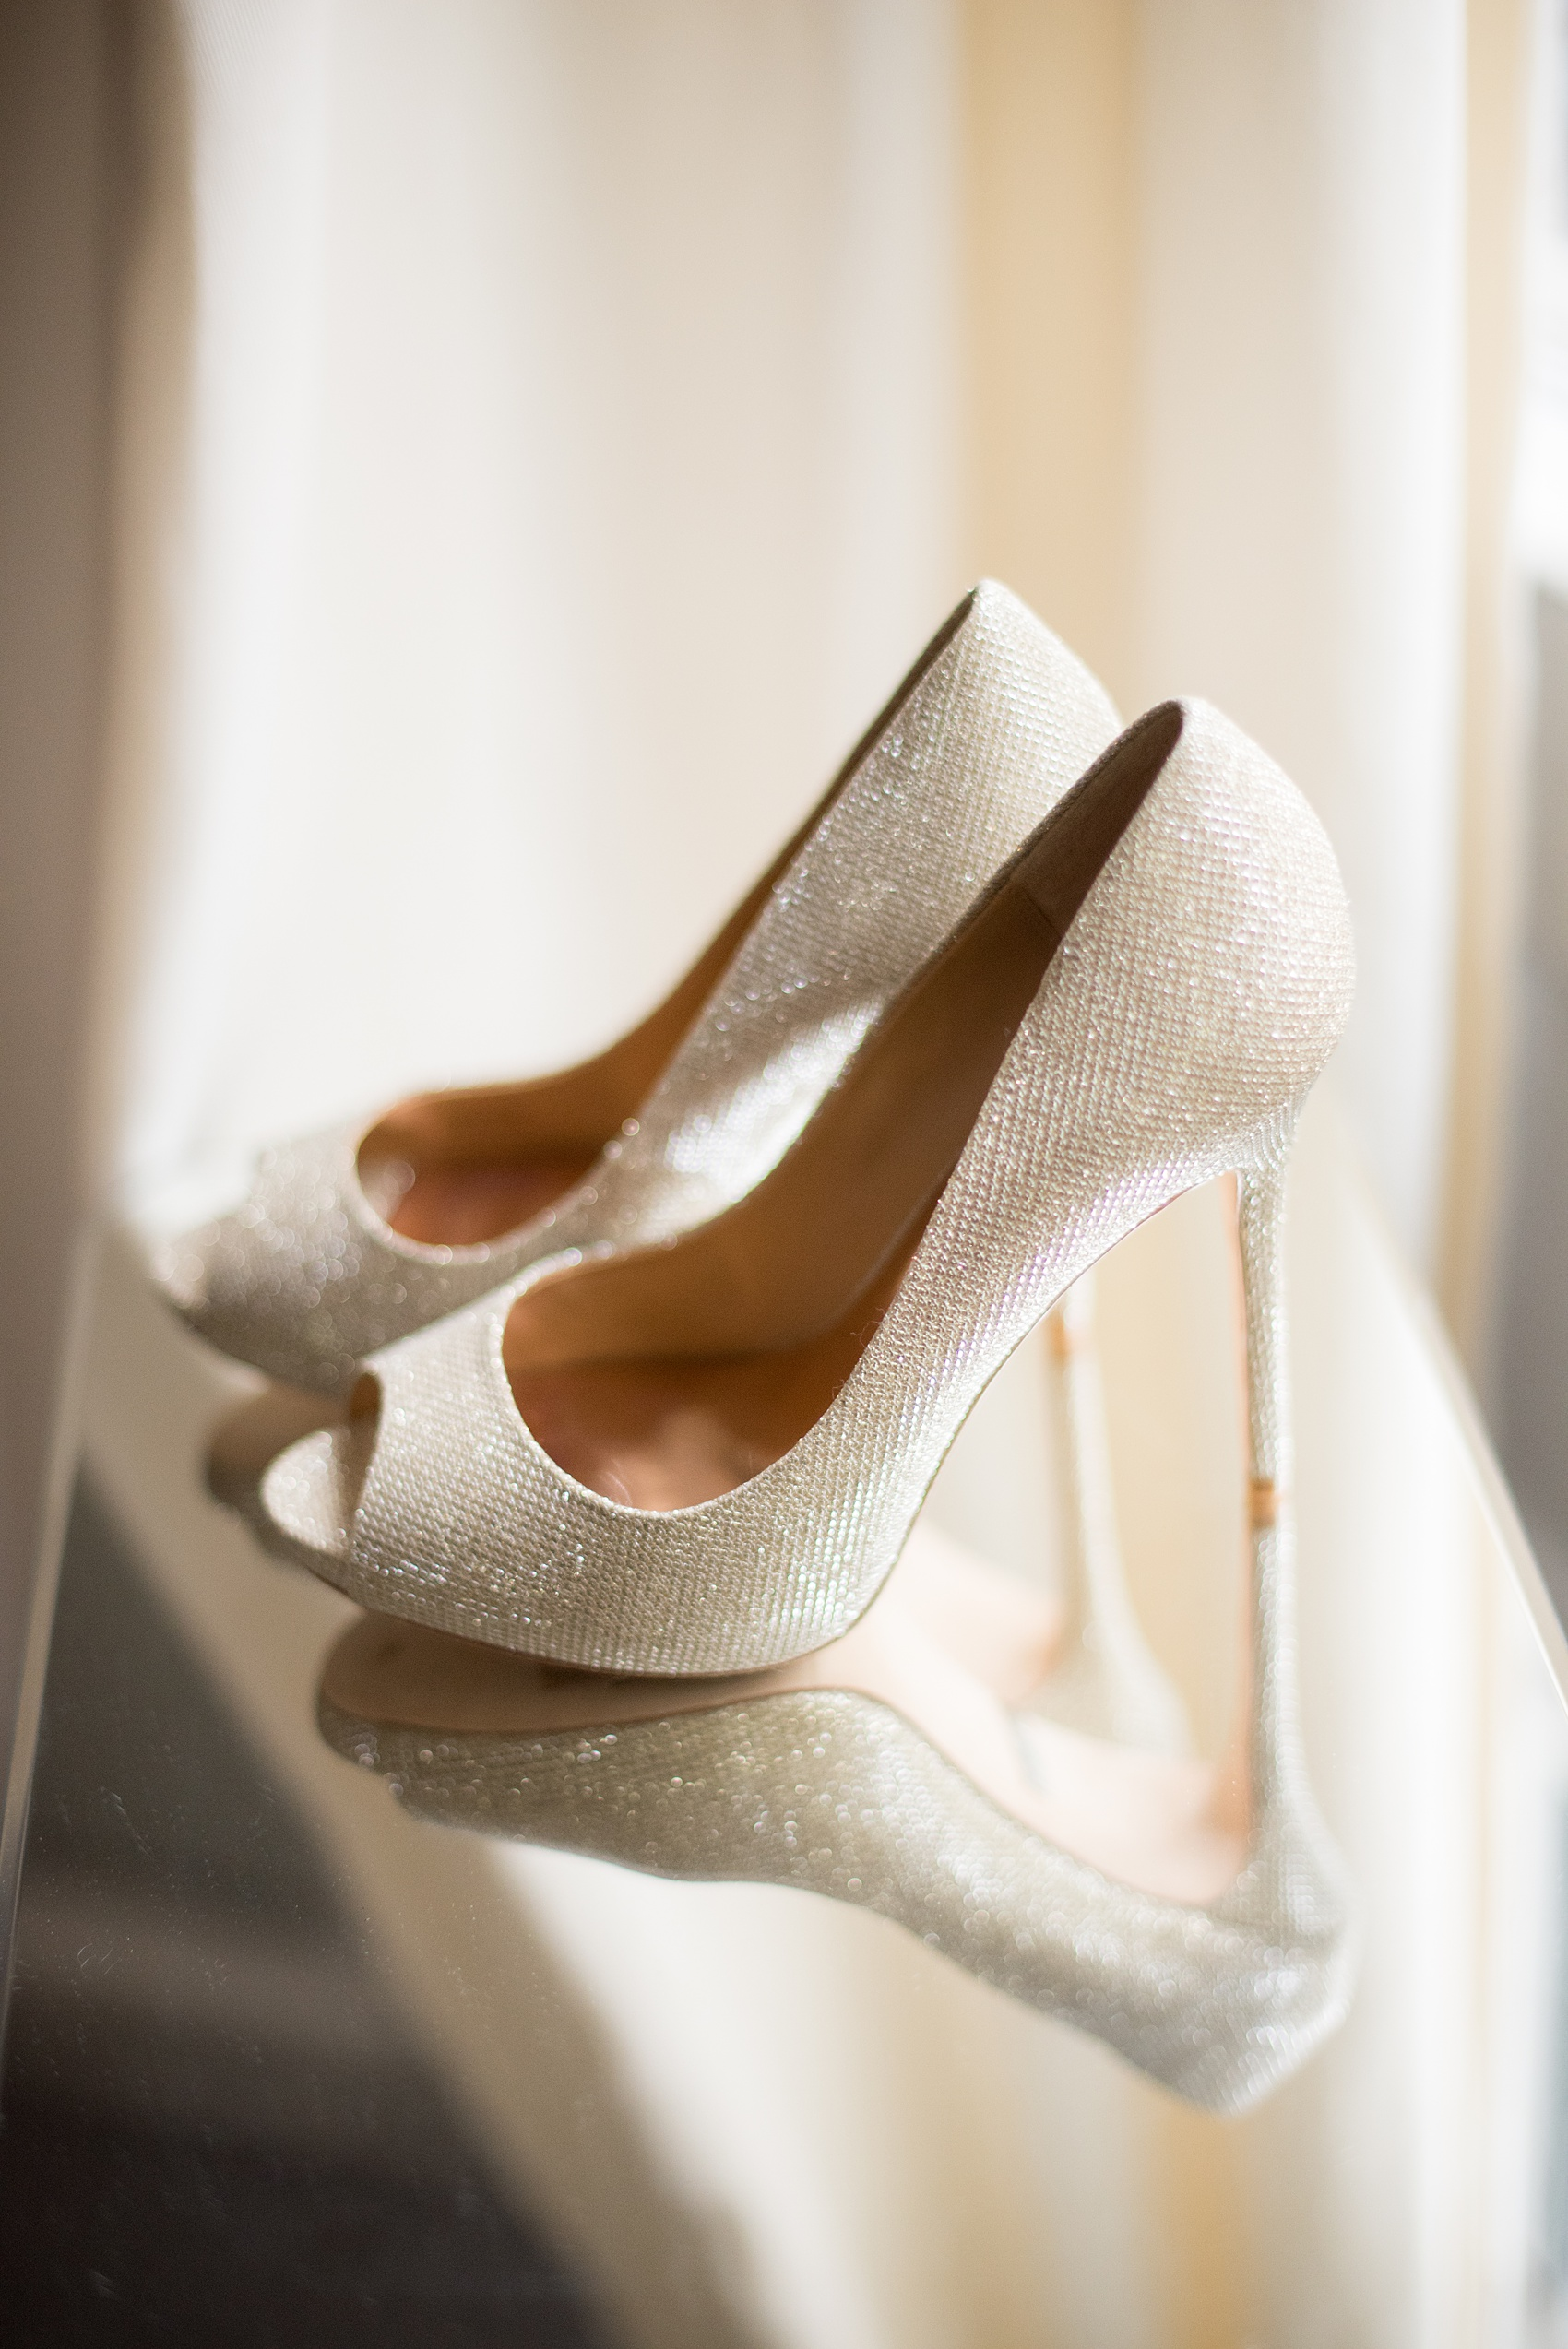 Mikkel Paige Photography photos from a wedding at Leslie-Alford Mims House in North Carolina. Picture of the bride's metallic gold Badgley Mischka heels.